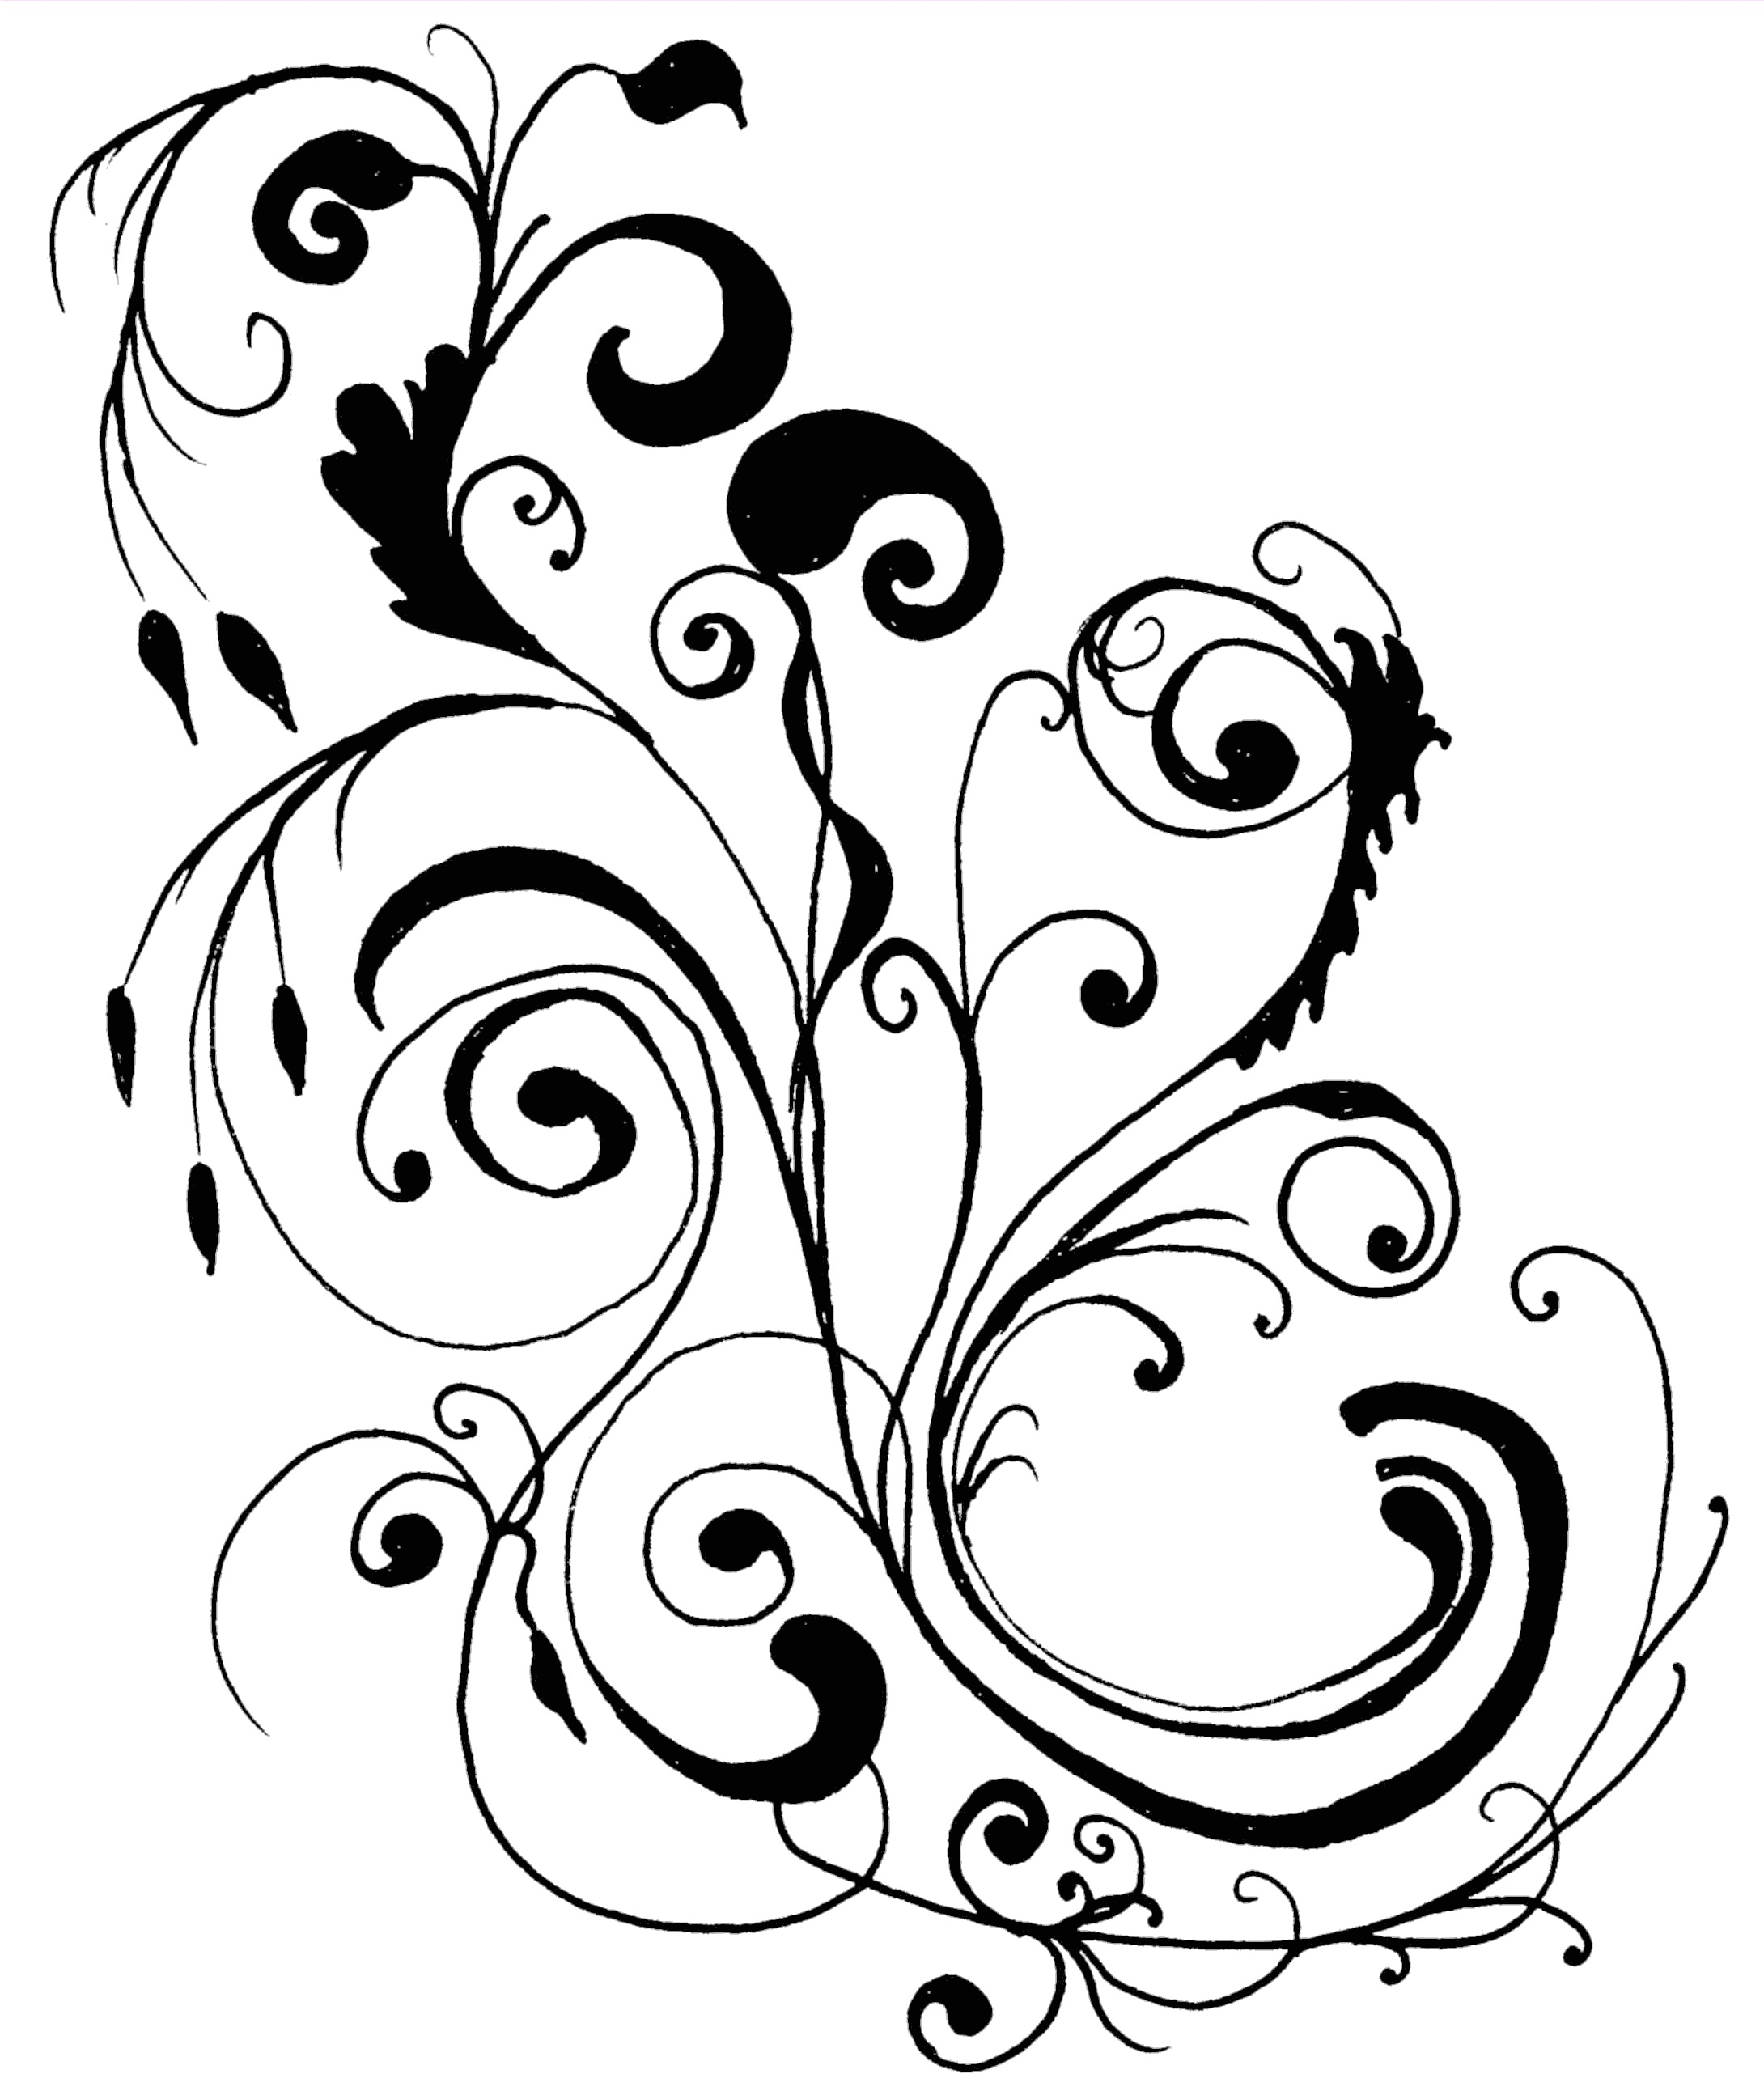 Cool Line Art Designs : Clip art line design clipart suggest